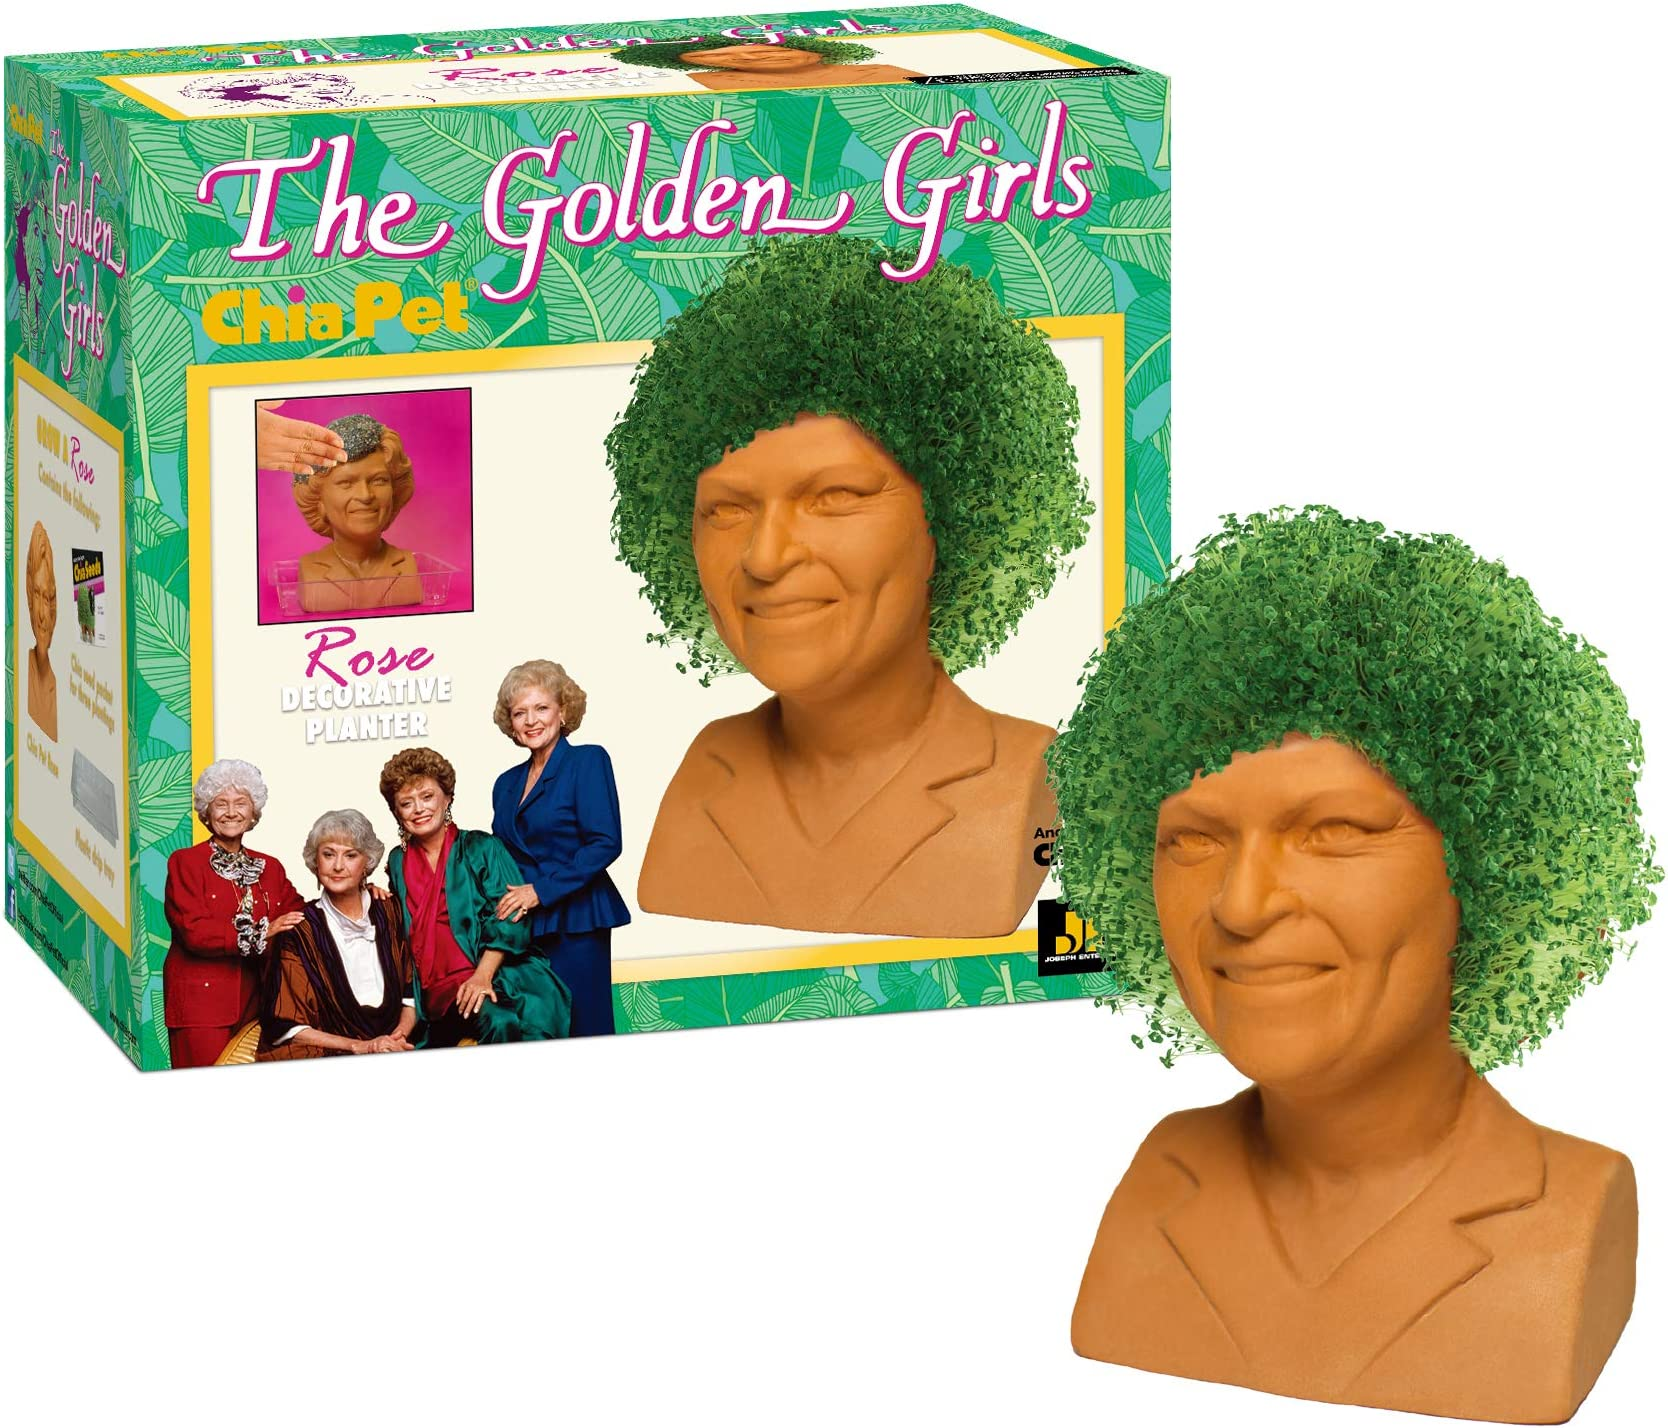 Chia Pet Golden Girls-Rose Decorative Pottery Planter, Easy to Do and Fun to Grow, Novelty Gift, One Size, Terra Cotta